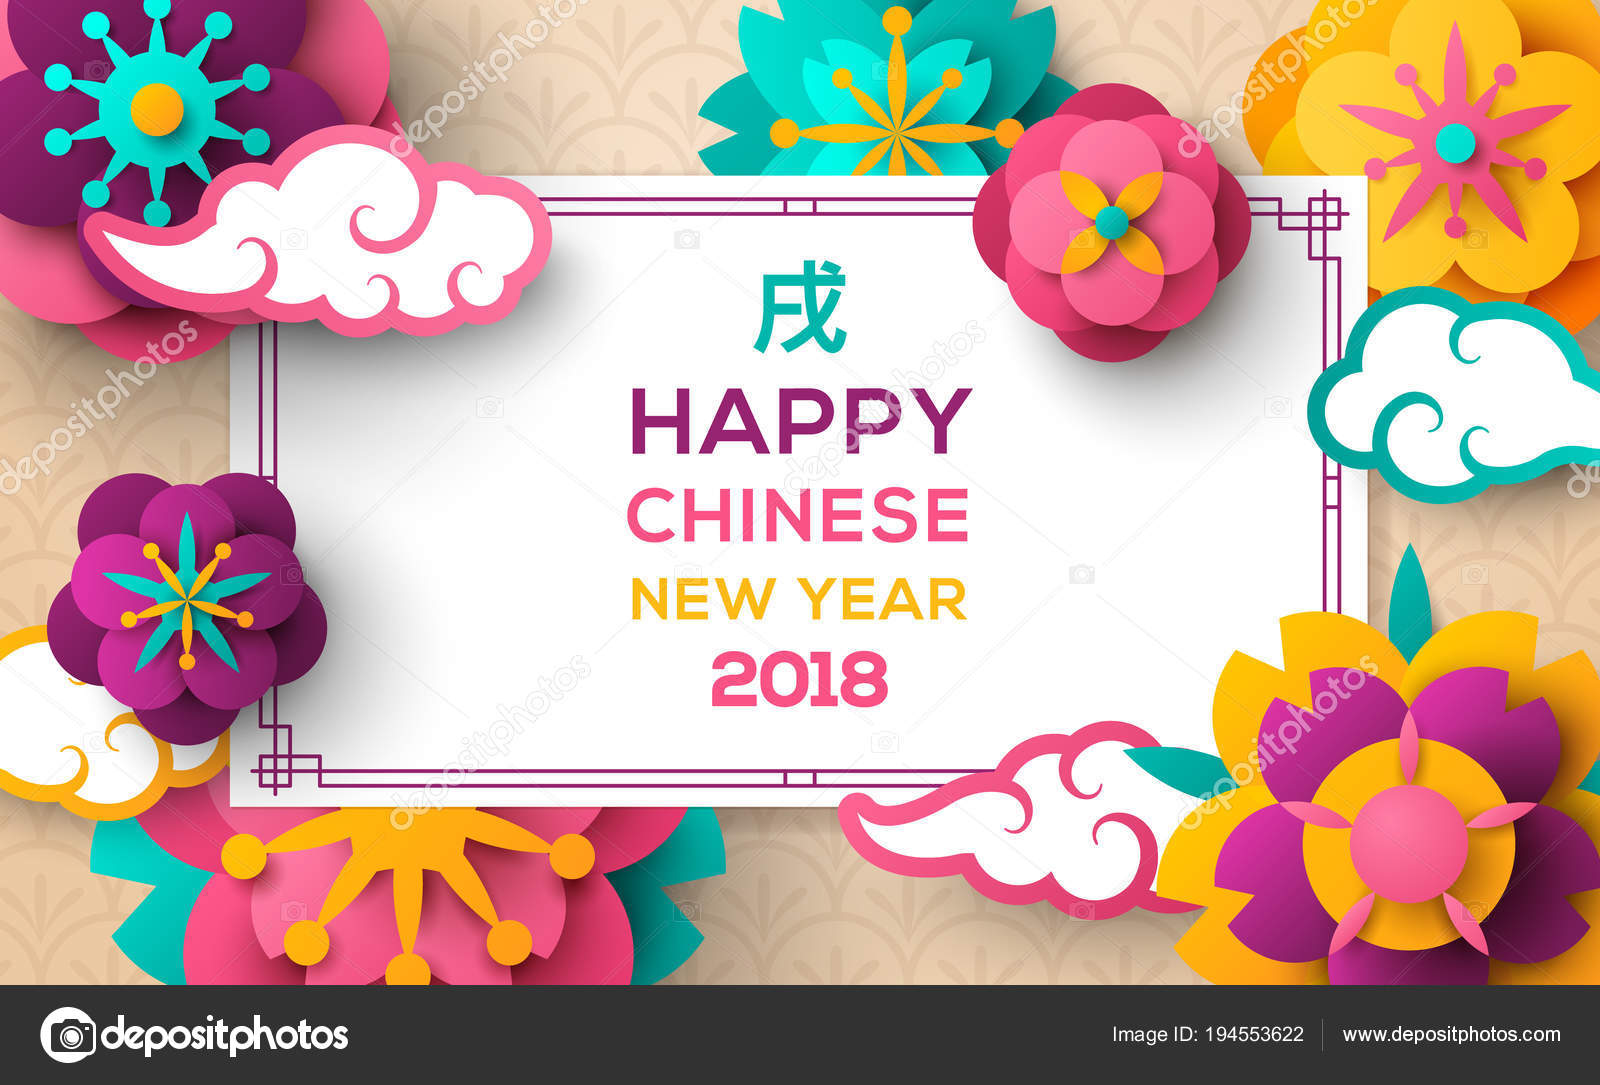 Chinese New Year Greeting Card with White Square Frame — Stock ...